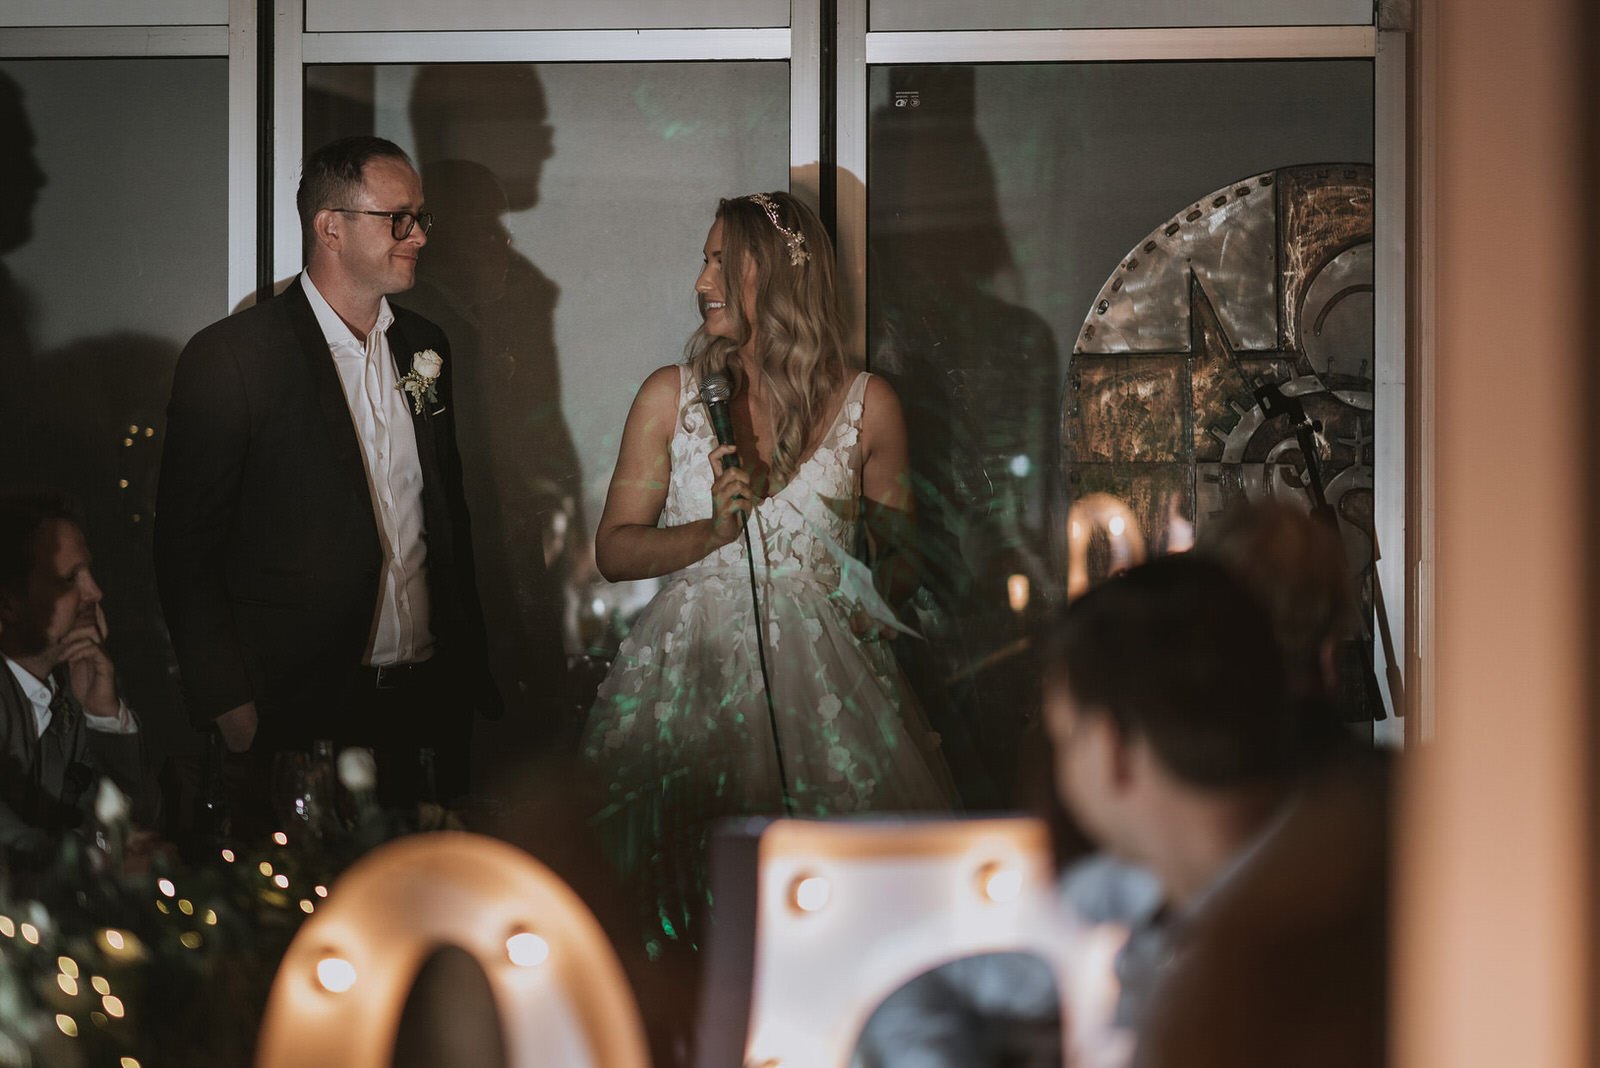 newfound-at-glendowie-auckland-wedding-photographers-173